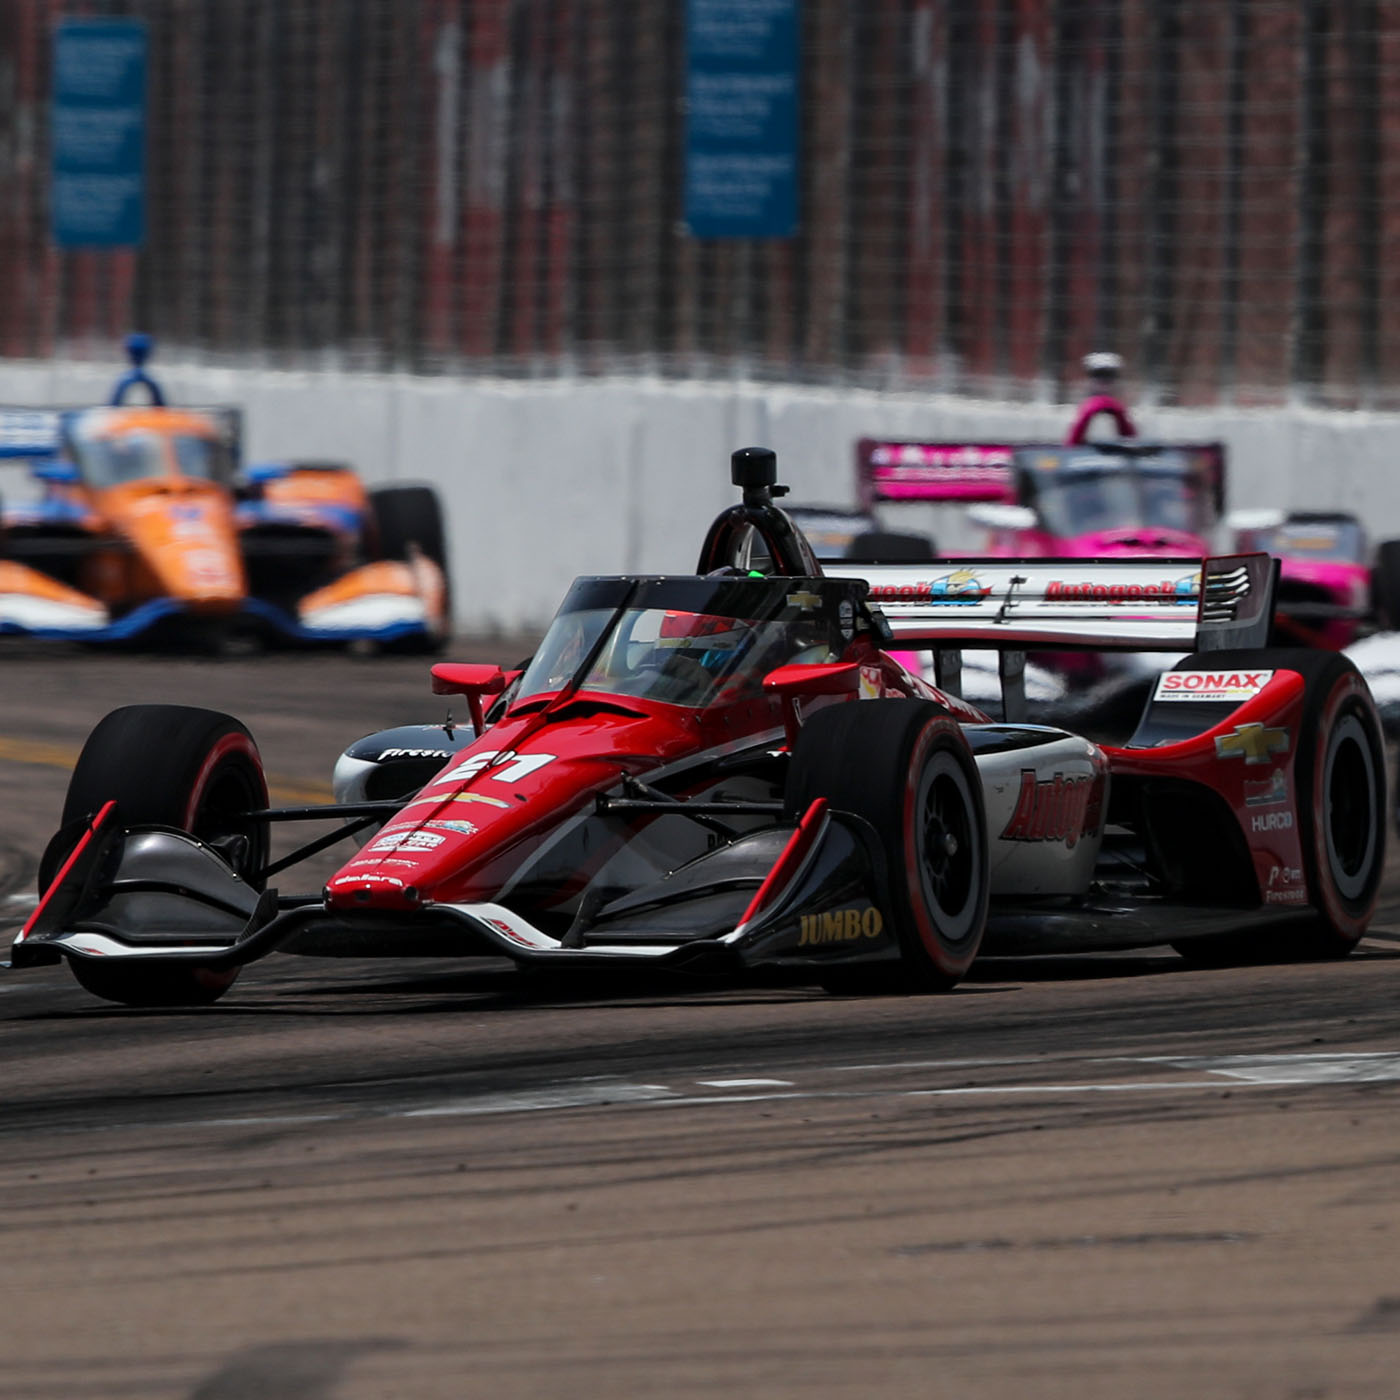 MP 1094: The Week In IndyCar, May 11, Listener Q&A Part 2